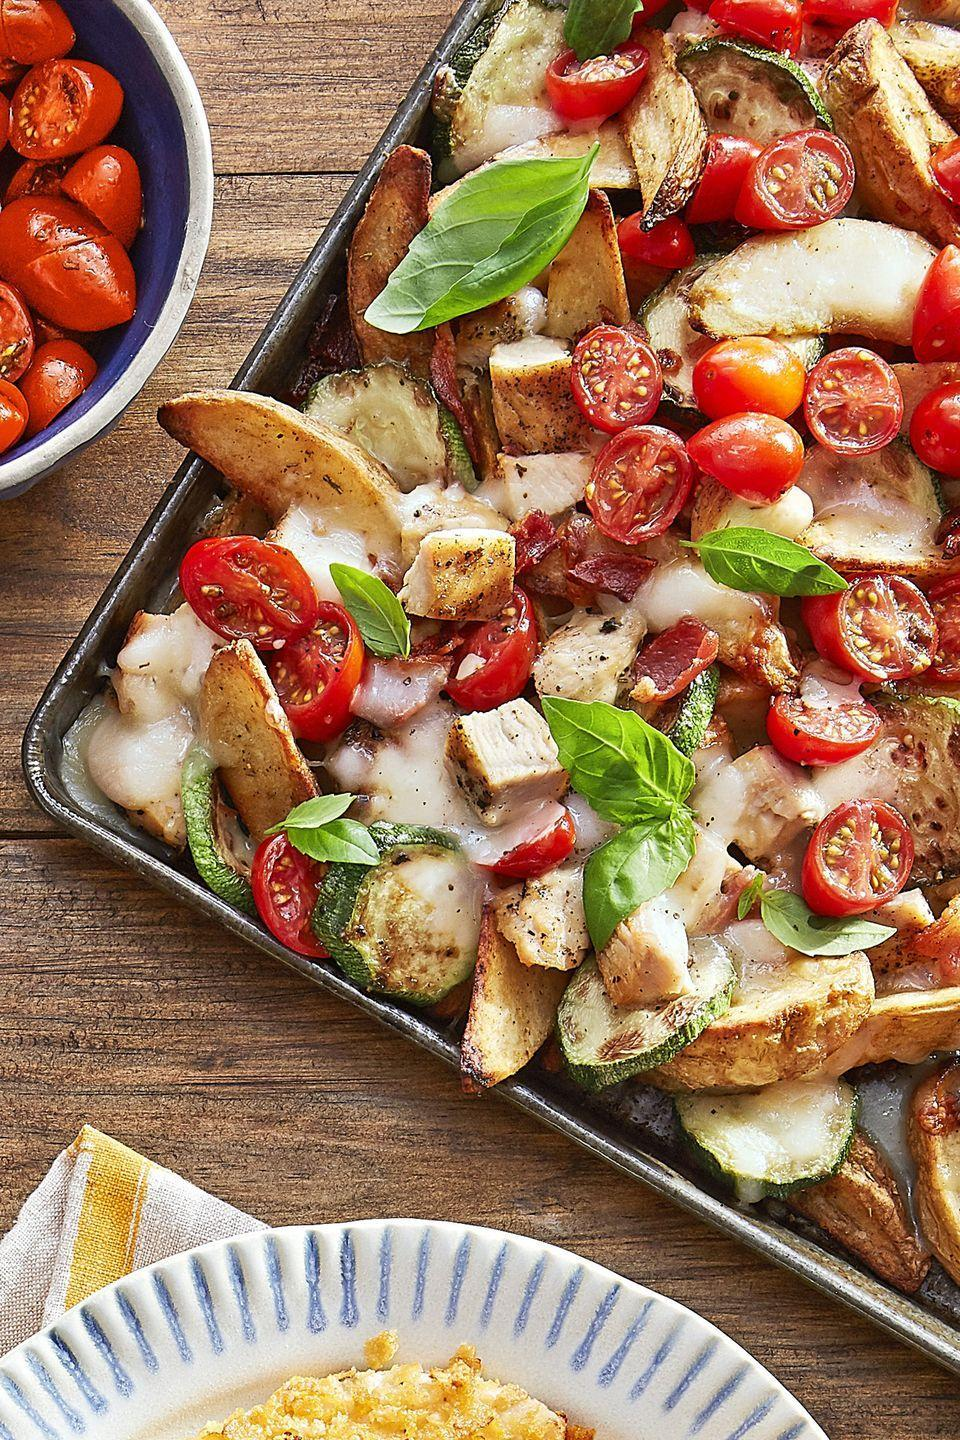 """<p>Move over tortilla chips, potato wedges and chicken are the new go-to nacho base.</p><p><strong><a href=""""https://www.countryliving.com/food-drinks/recipes/a44281/italian-potato-wedge-nachos-recipe/"""" rel=""""nofollow noopener"""" target=""""_blank"""" data-ylk=""""slk:Get the recipe"""" class=""""link rapid-noclick-resp"""">Get the recipe</a>.</strong><br></p><p><a class=""""link rapid-noclick-resp"""" href=""""https://www.amazon.com/dp/B0049C2S32/?tag=syn-yahoo-20&ascsubtag=%5Bartid%7C10050.g.680%5Bsrc%7Cyahoo-us"""" rel=""""nofollow noopener"""" target=""""_blank"""" data-ylk=""""slk:SHOP BAKING SHEETS"""">SHOP BAKING SHEETS</a> </p>"""